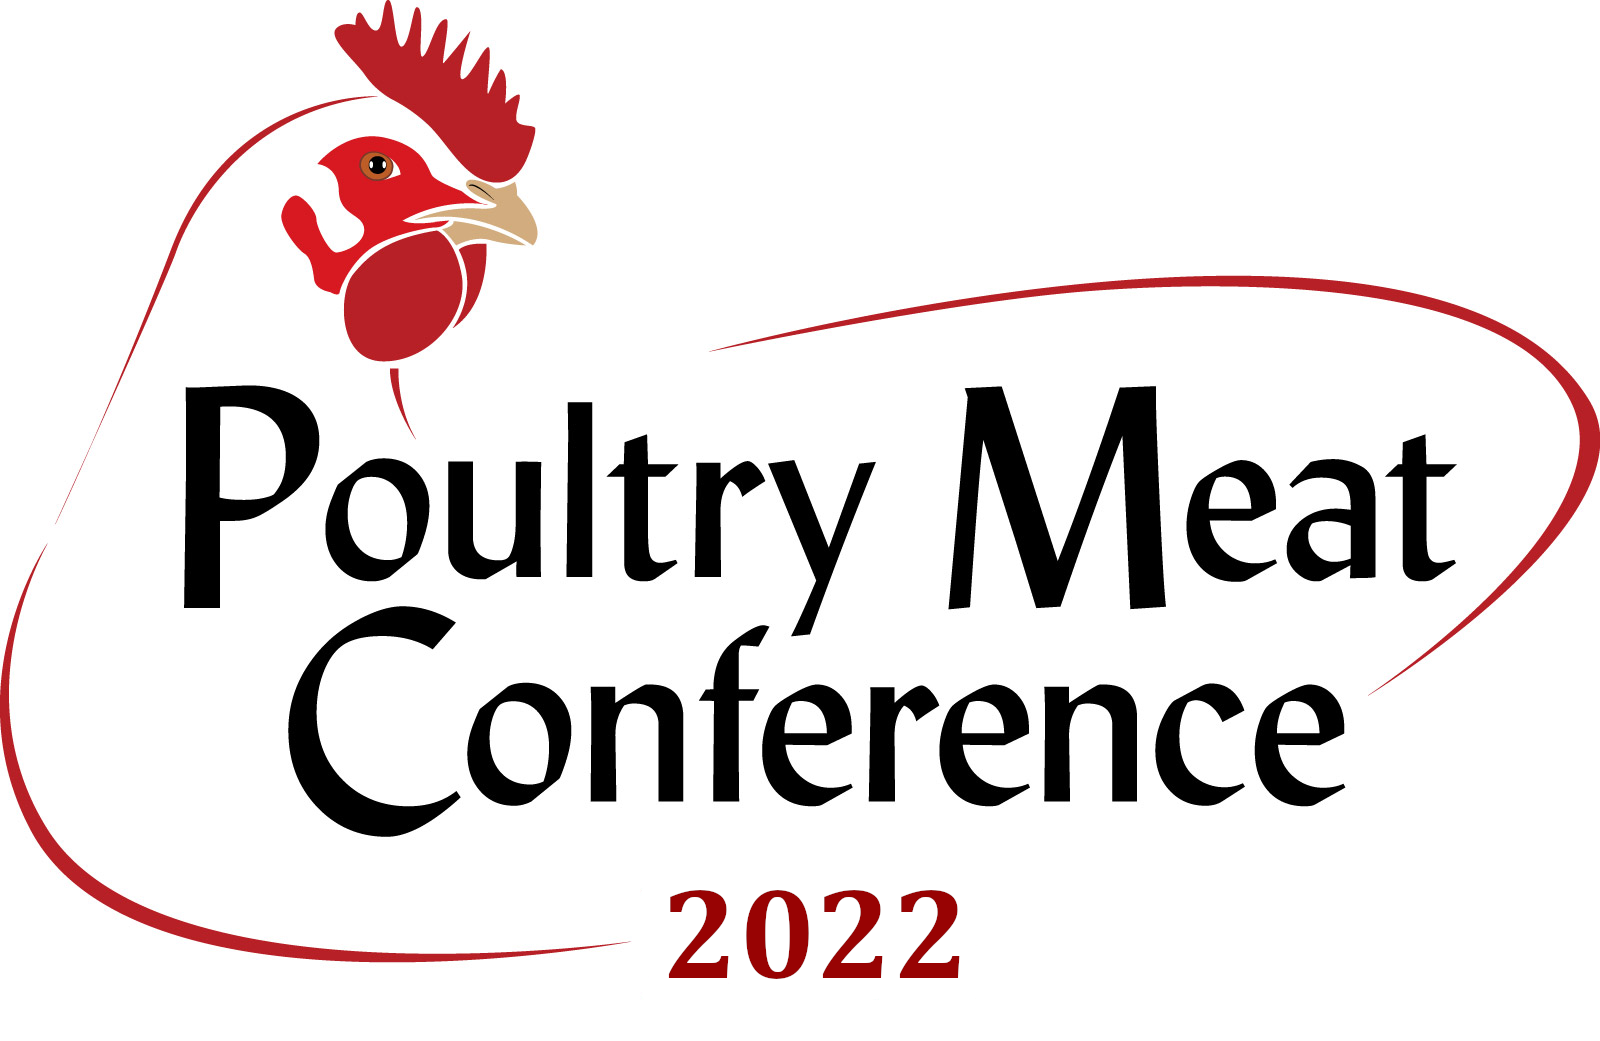 Poultry Meat Conference Logo